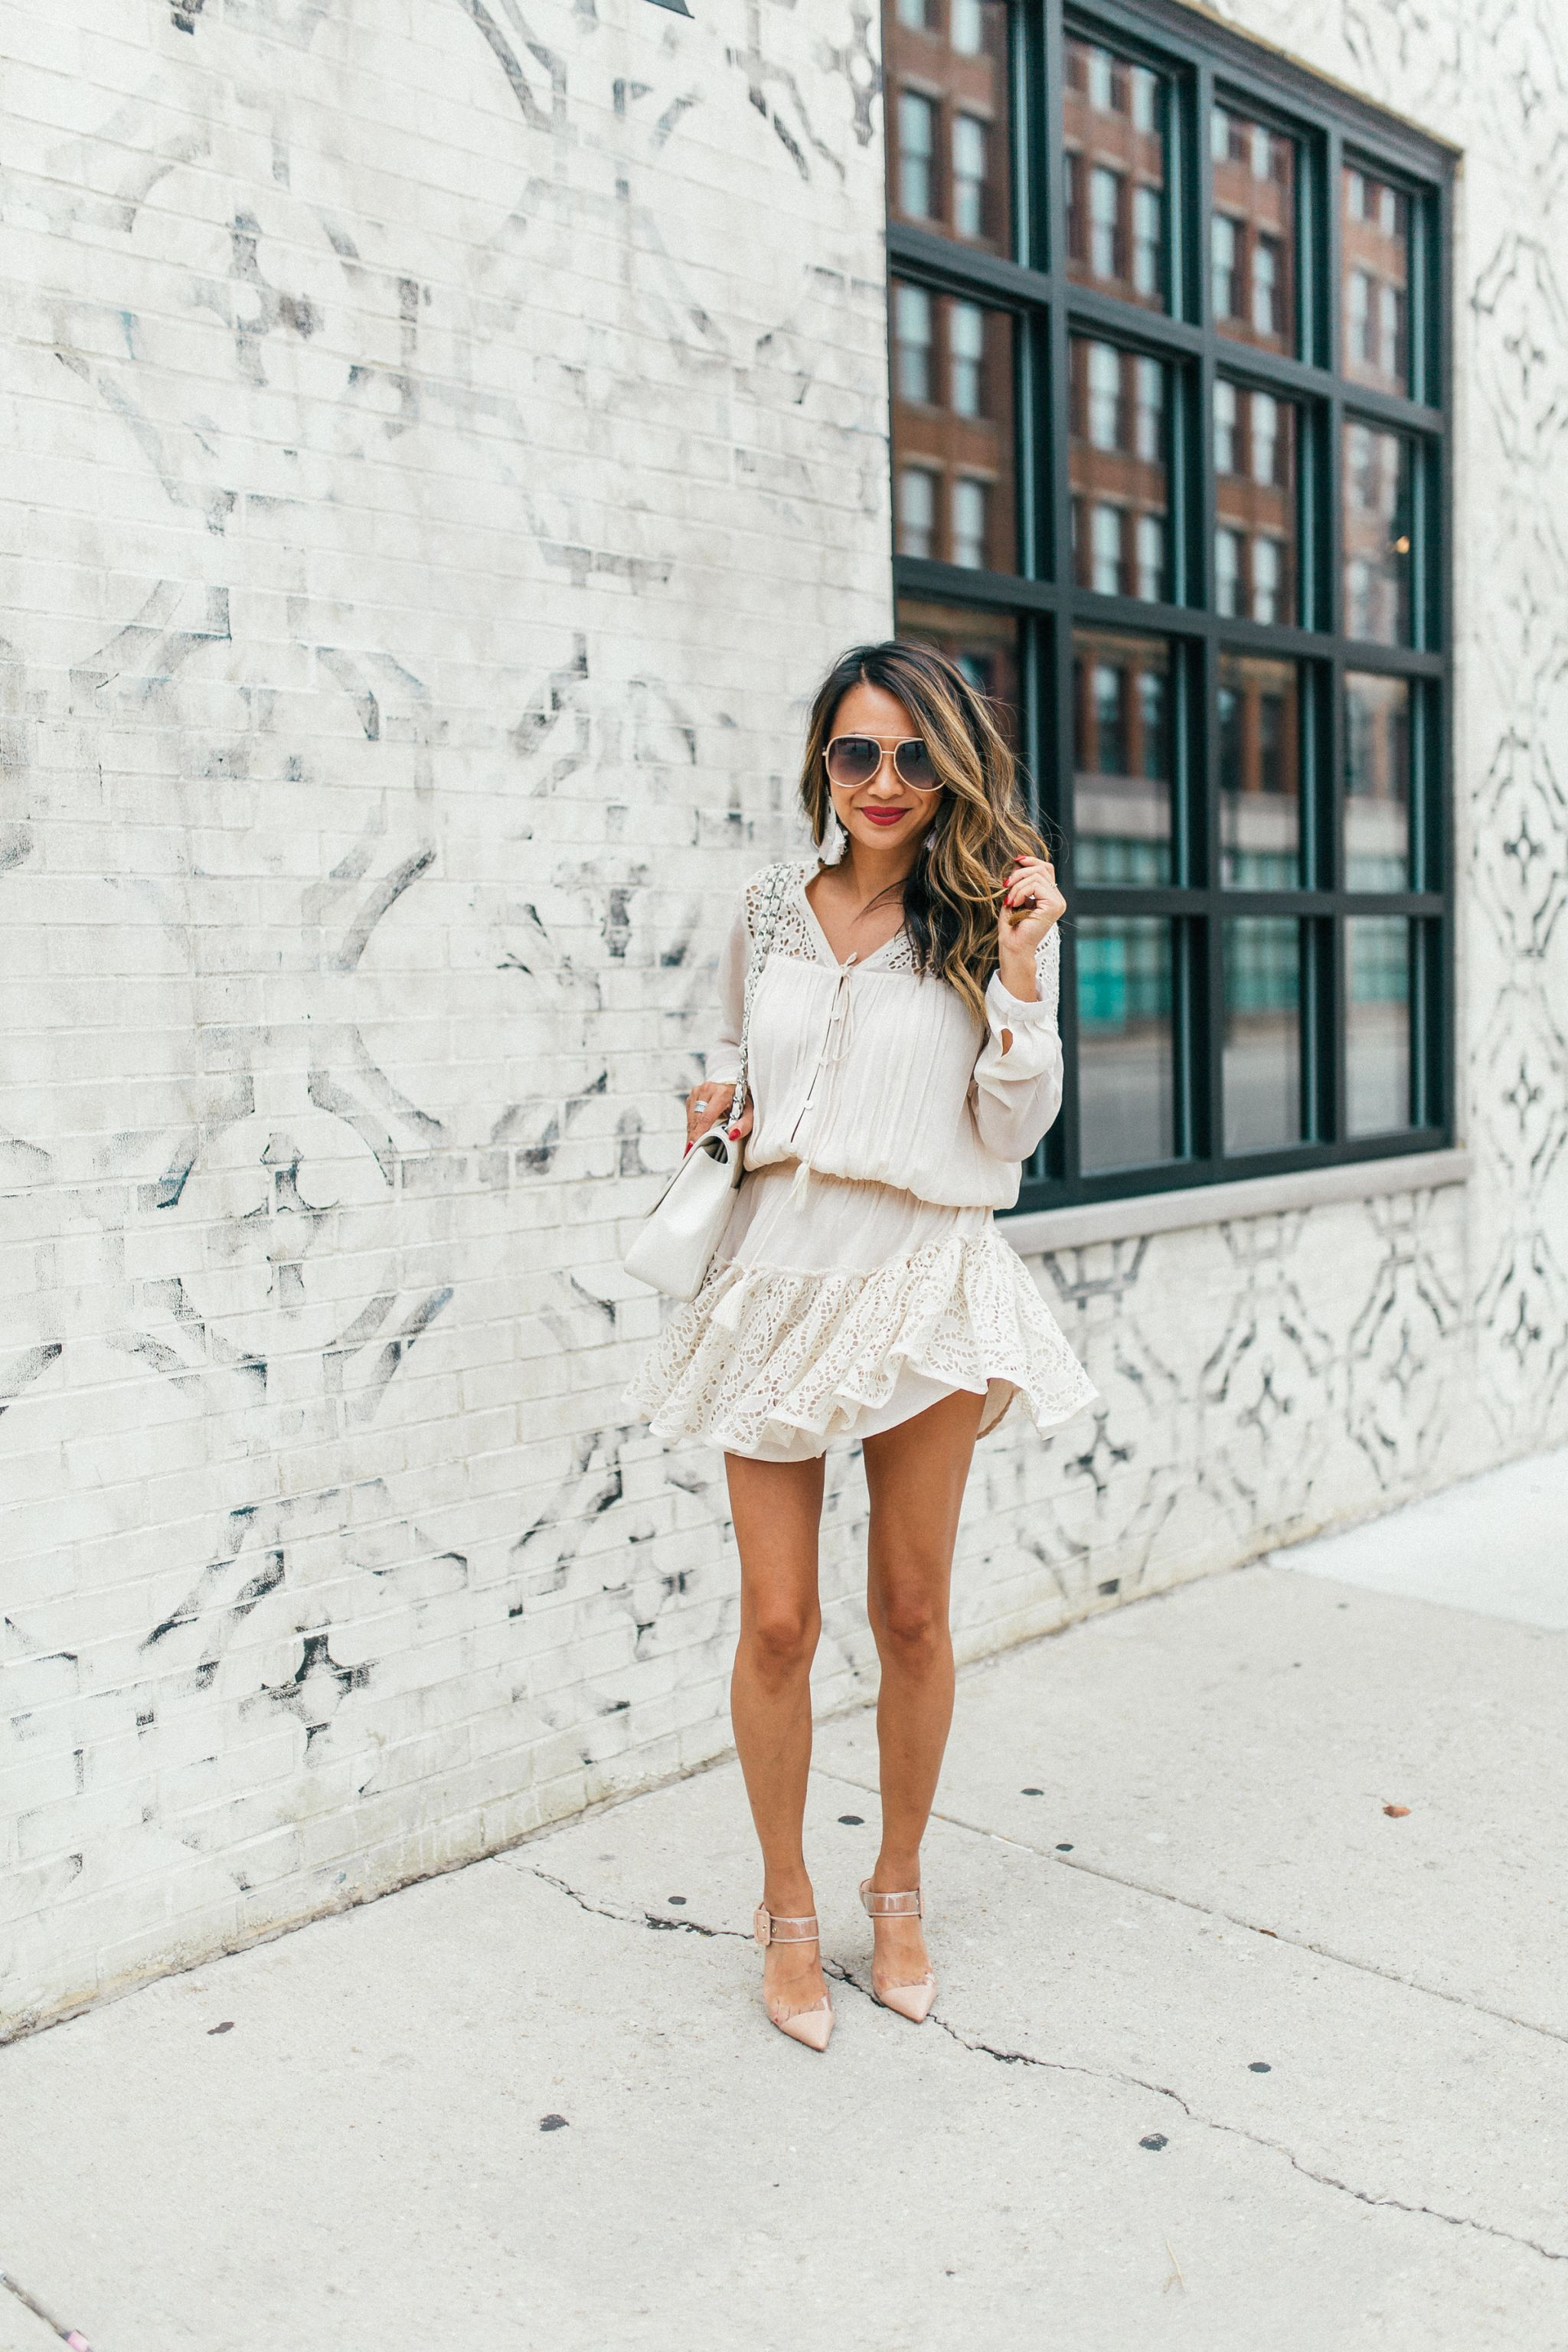 Top Instagrammable places in Chicago, Best place to take instagram photos in chicago, Chicago places to visit to take photos, Jennifer Worman, Best Chicago spots for photos, Bernies Restaurant